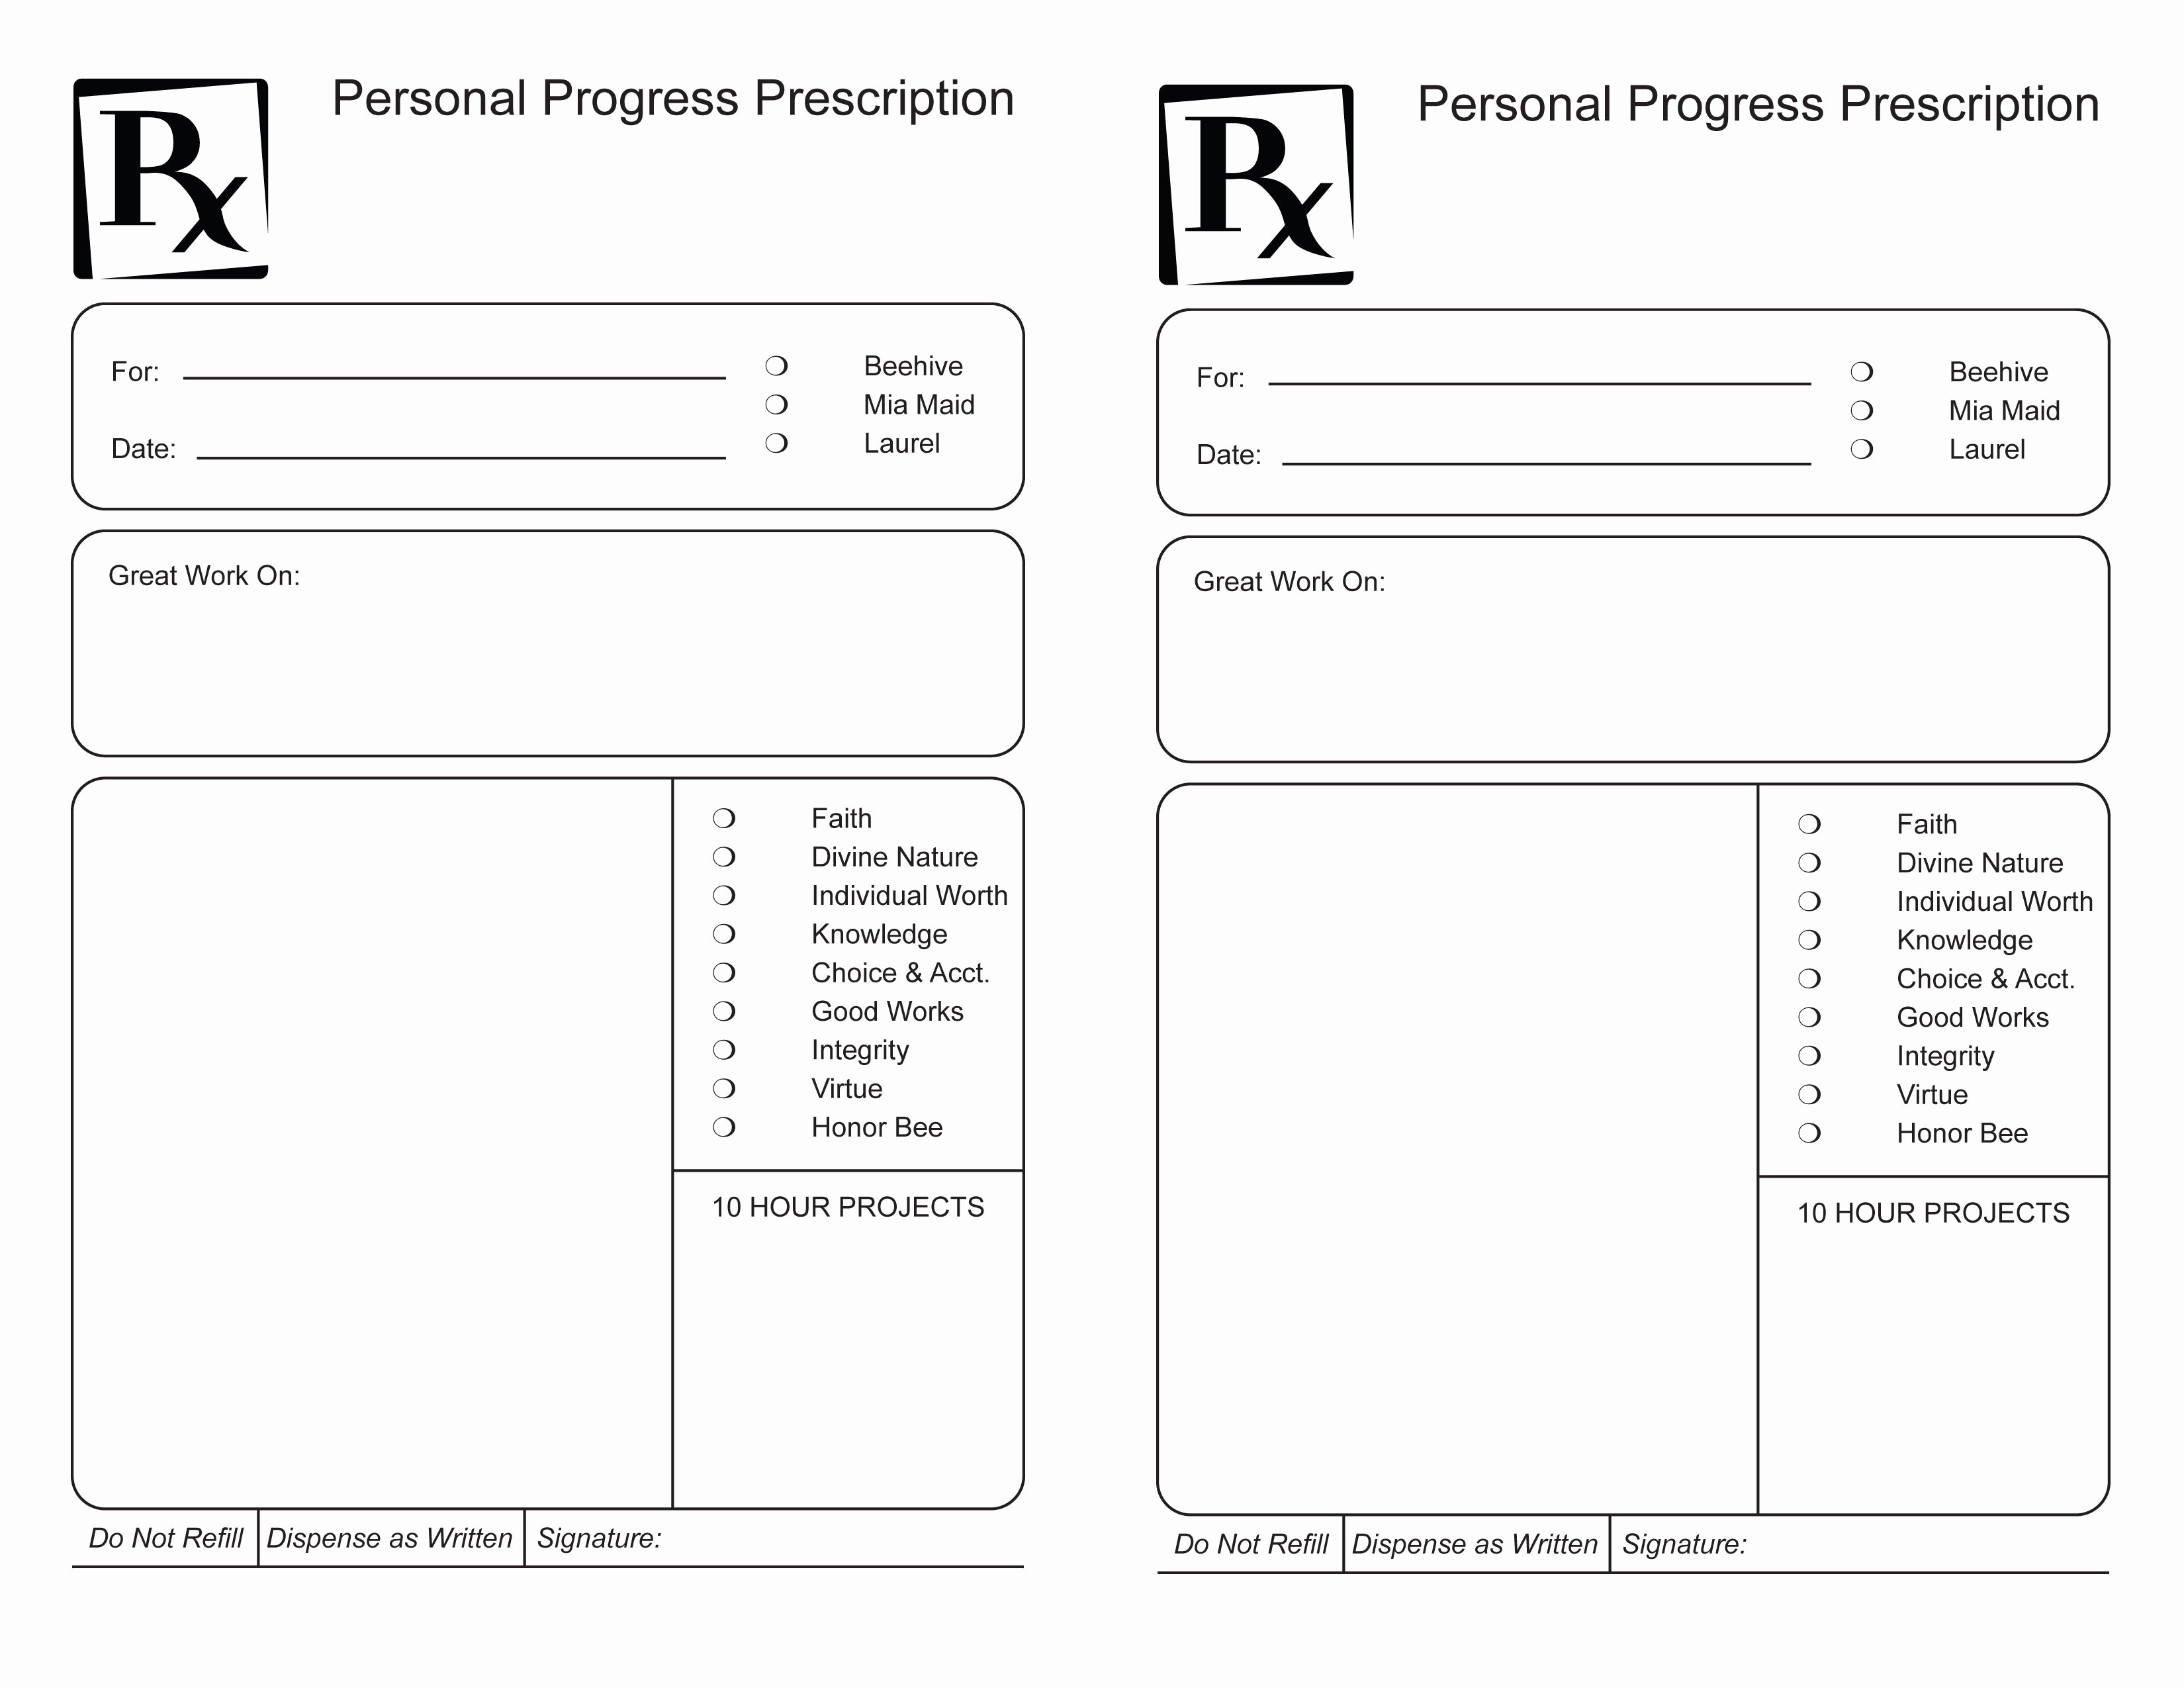 Blank Rx Template to Pin On Pinterest Pinsdaddy